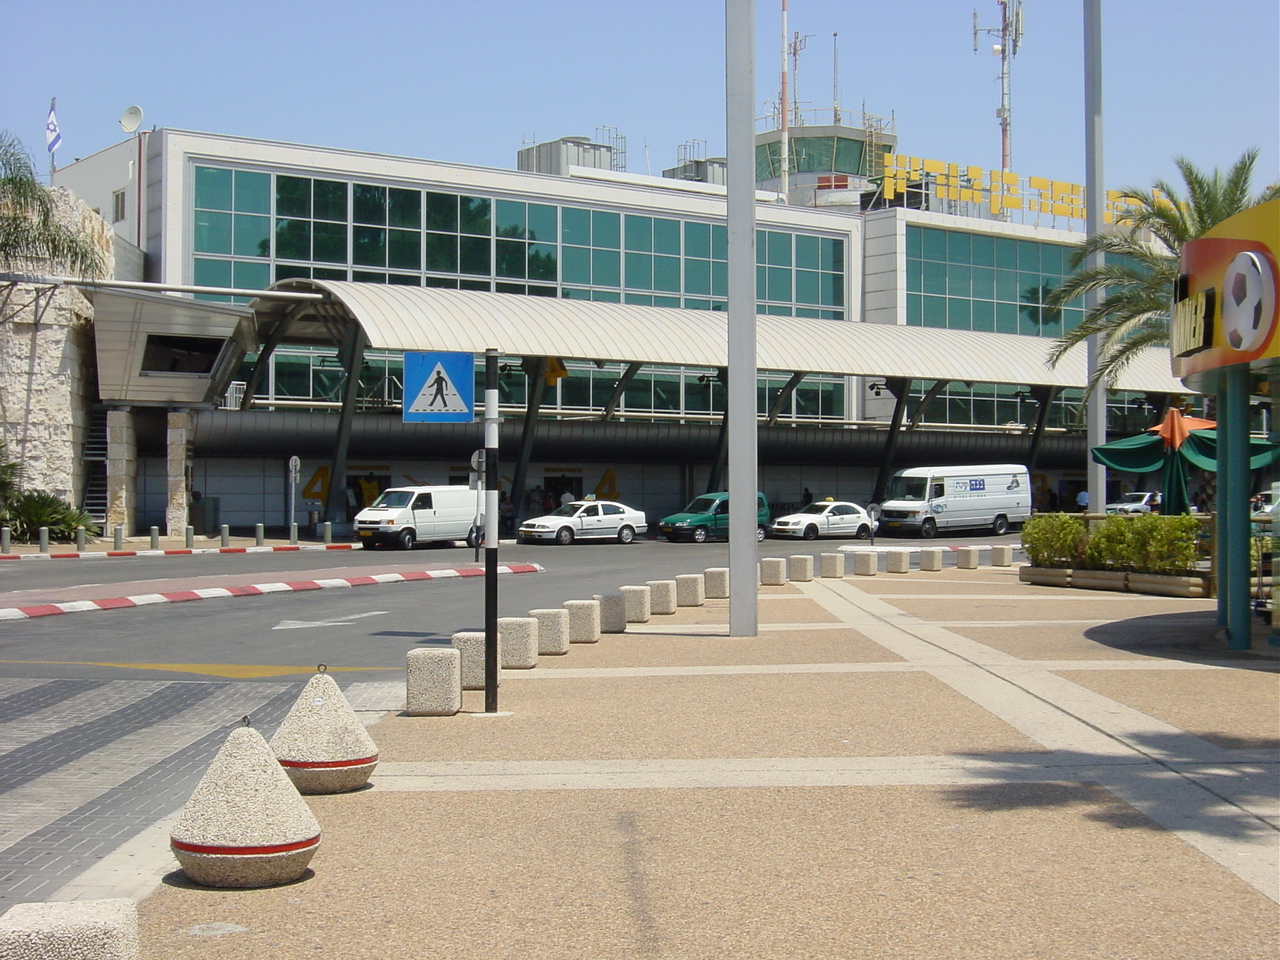 Ben Gurion International Airport TelAviv (Tel Aviv Ben Gurion International Airport). Ufficiale sayt.1